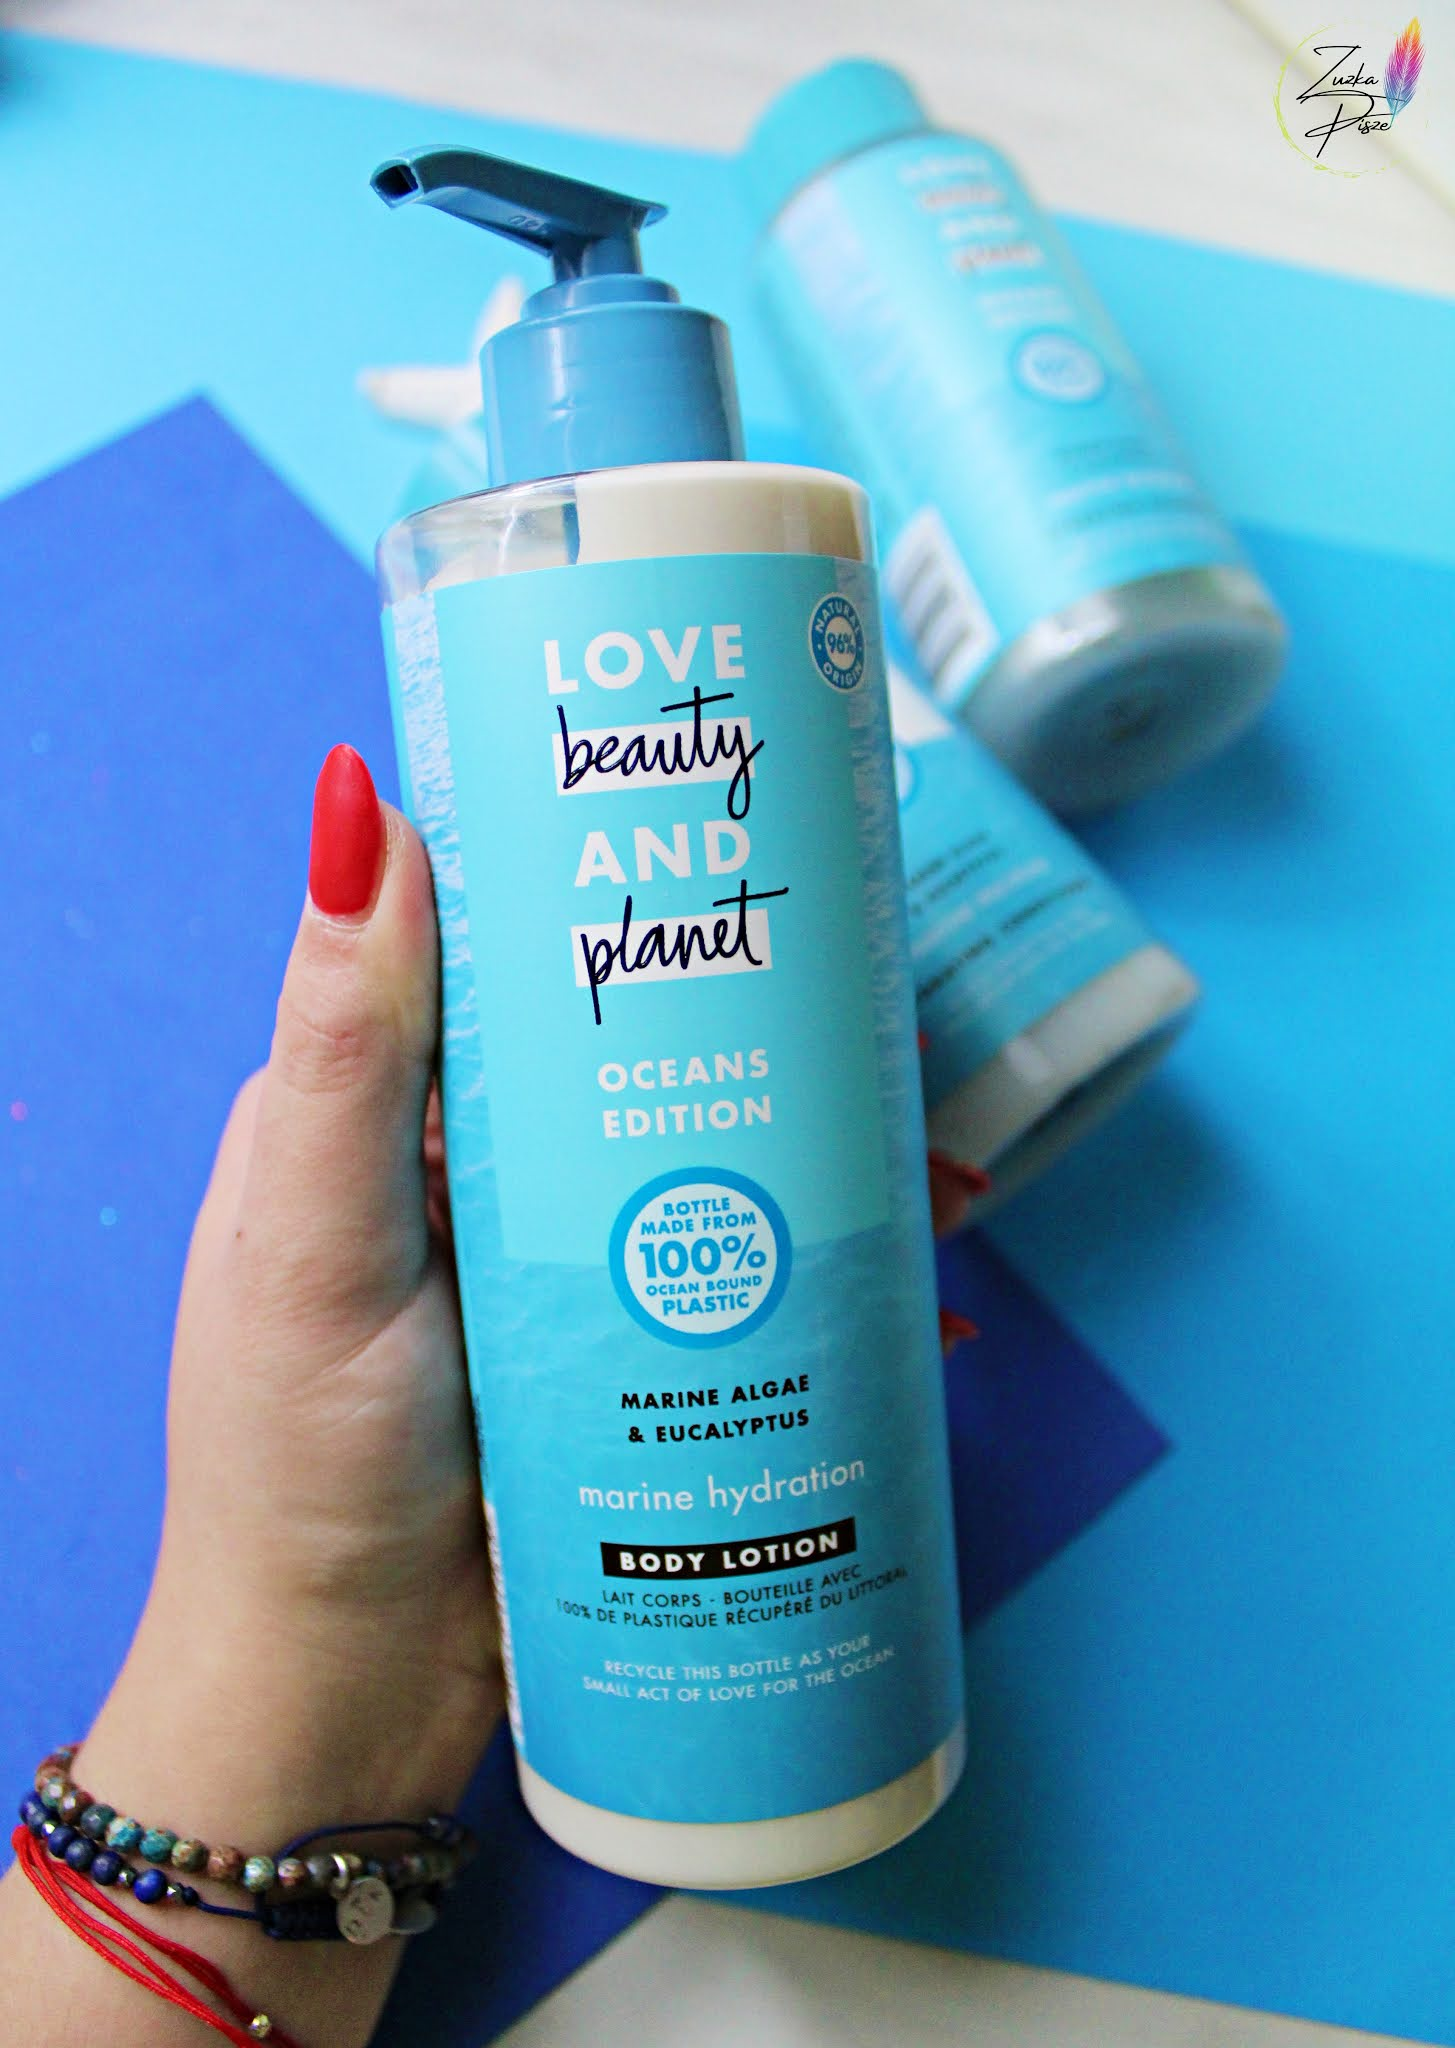 Love Beauty and Planet, Oceans Edition, Marine Hydration, Body Lotion